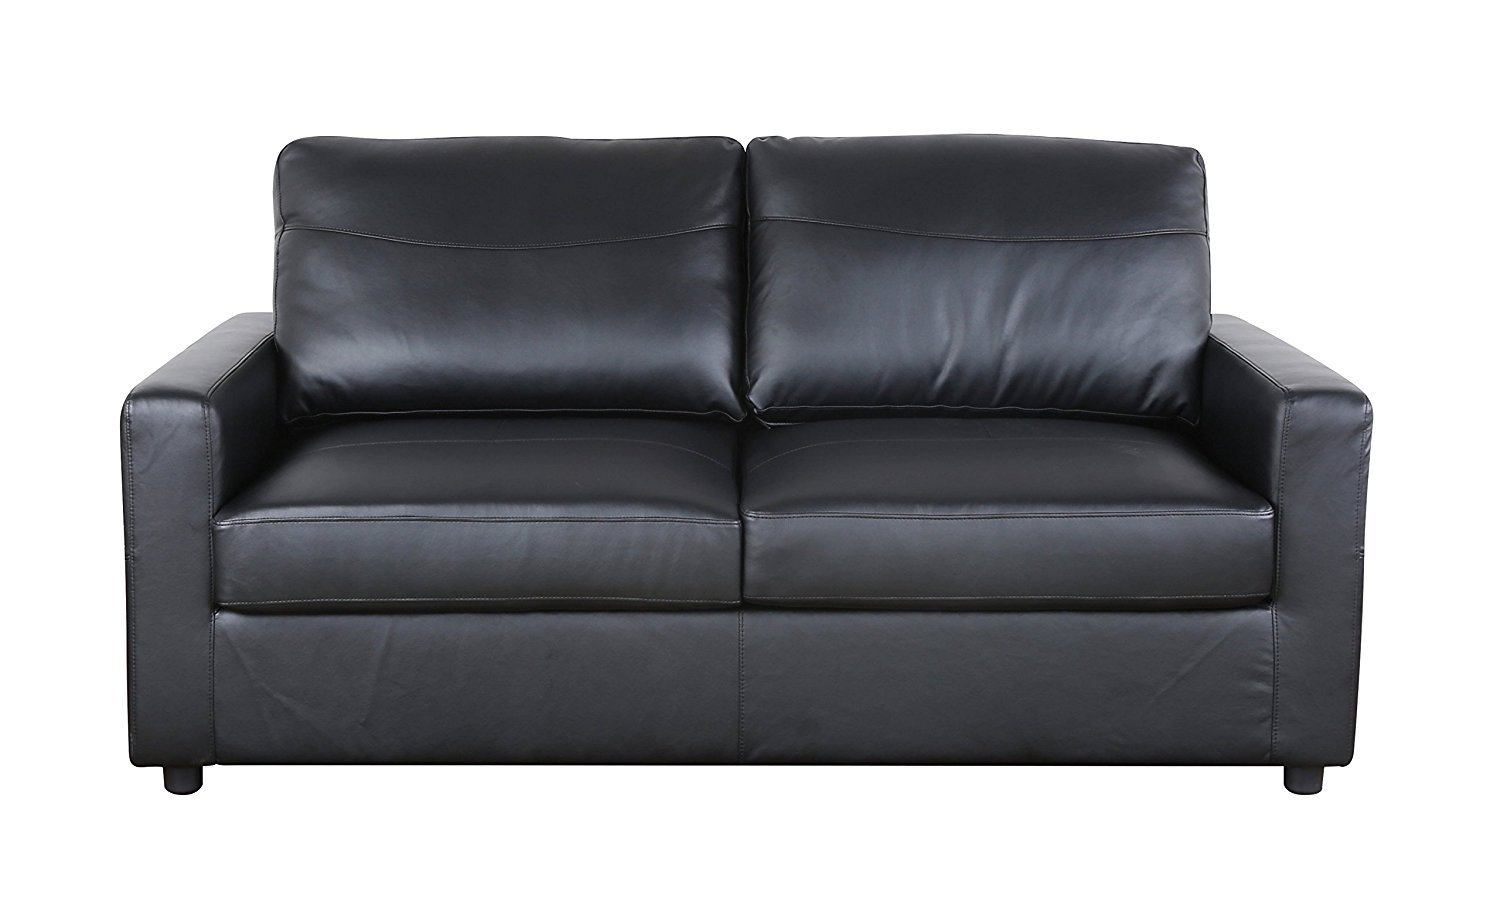 Rooms To Go Leather Couches Home Furniture Design